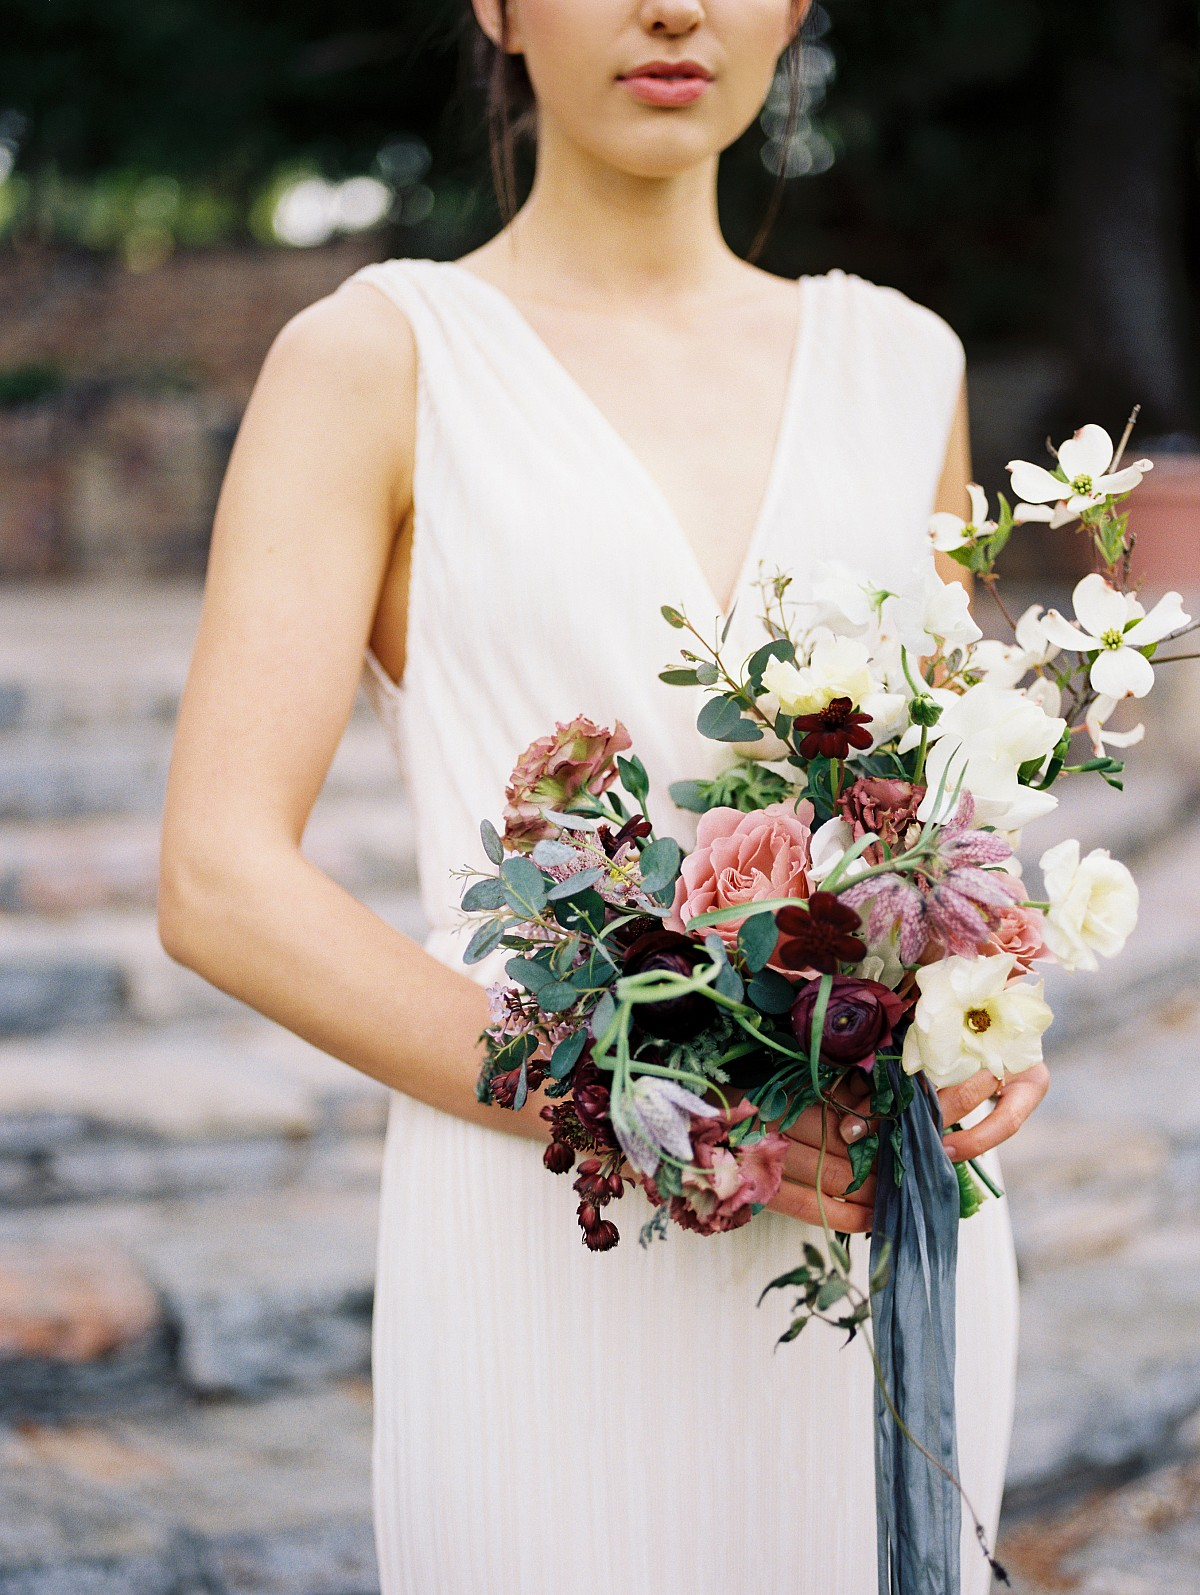 Feminine Spring Wedding Style Inspired by Lilac